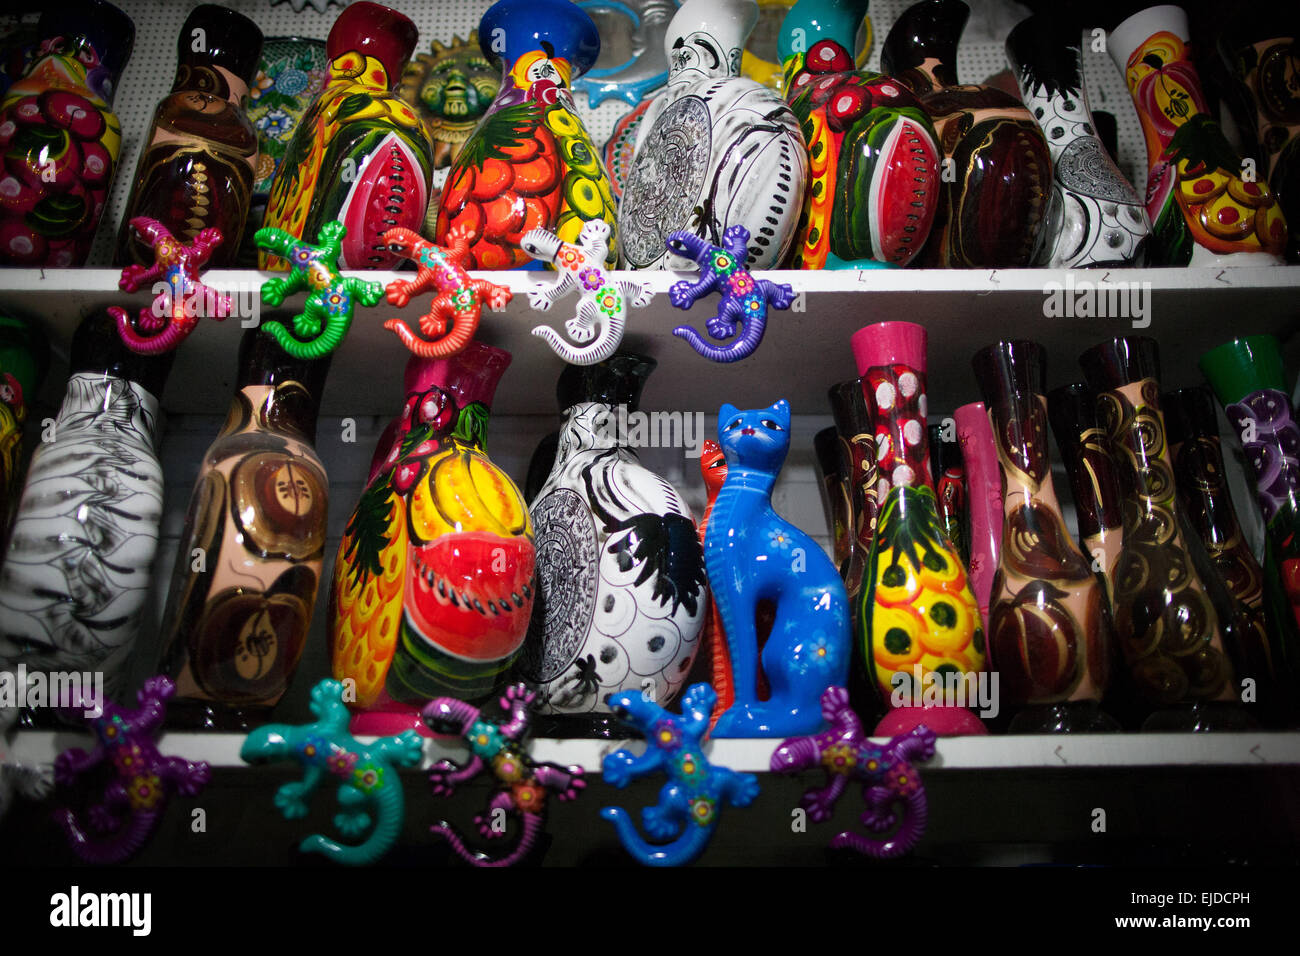 Acapulco, Mexico. 23rd Mar, 2015. Souvenirs are seen at a handcrafts market, in Acapulco City, Guerrero State, Mexico, - Stock Image